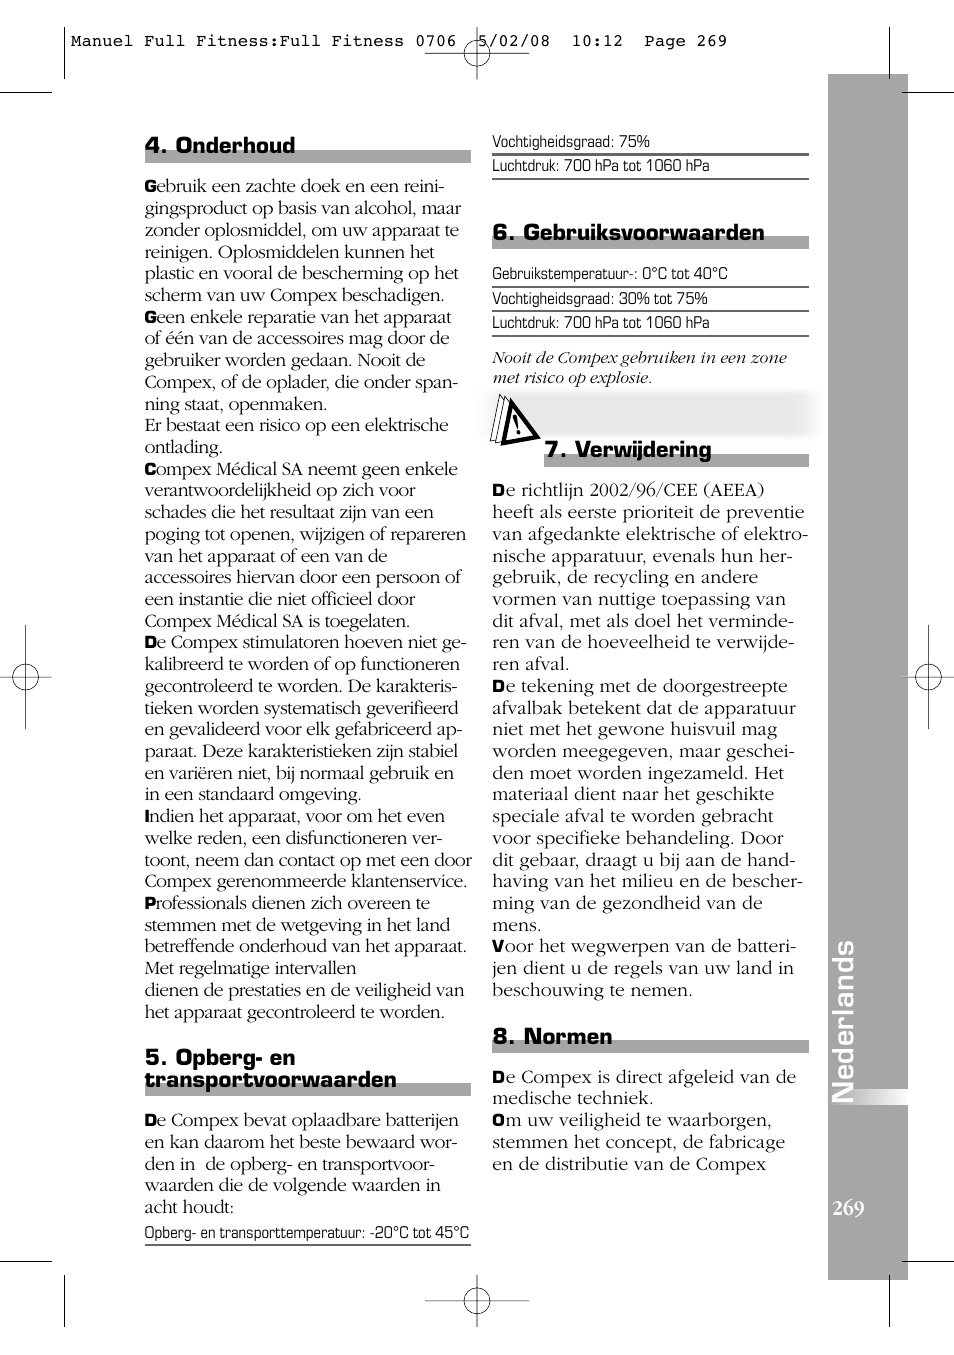 nederlands compex full fitness user manual page 269 321nederlands compex full fitness user manual page 269 321